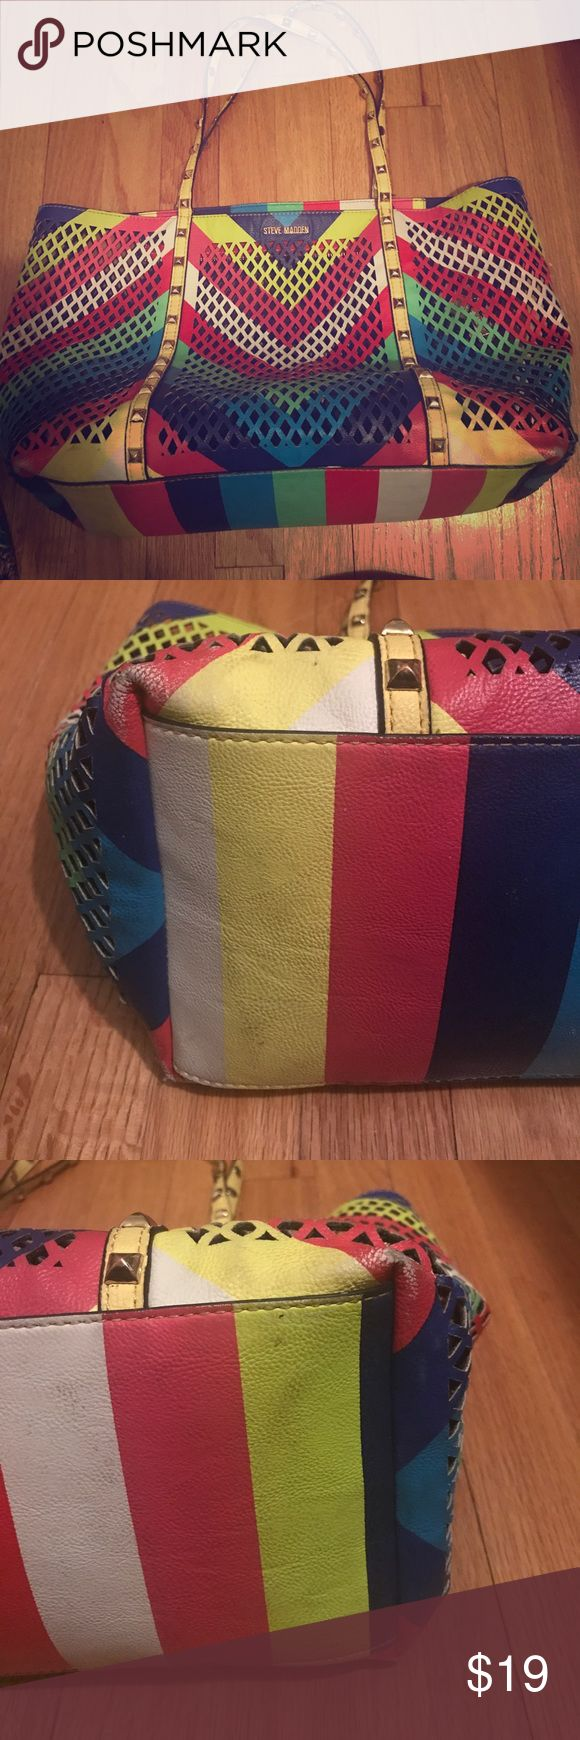 Rainbow Mesh Steve Madden Purse Condition is fair. Slightly noticeable  wear and tear to the purse (please view photographs). The purse does come with has a inside pouch, as shown in the photographs Steve Madden Bags Shoulder Bags